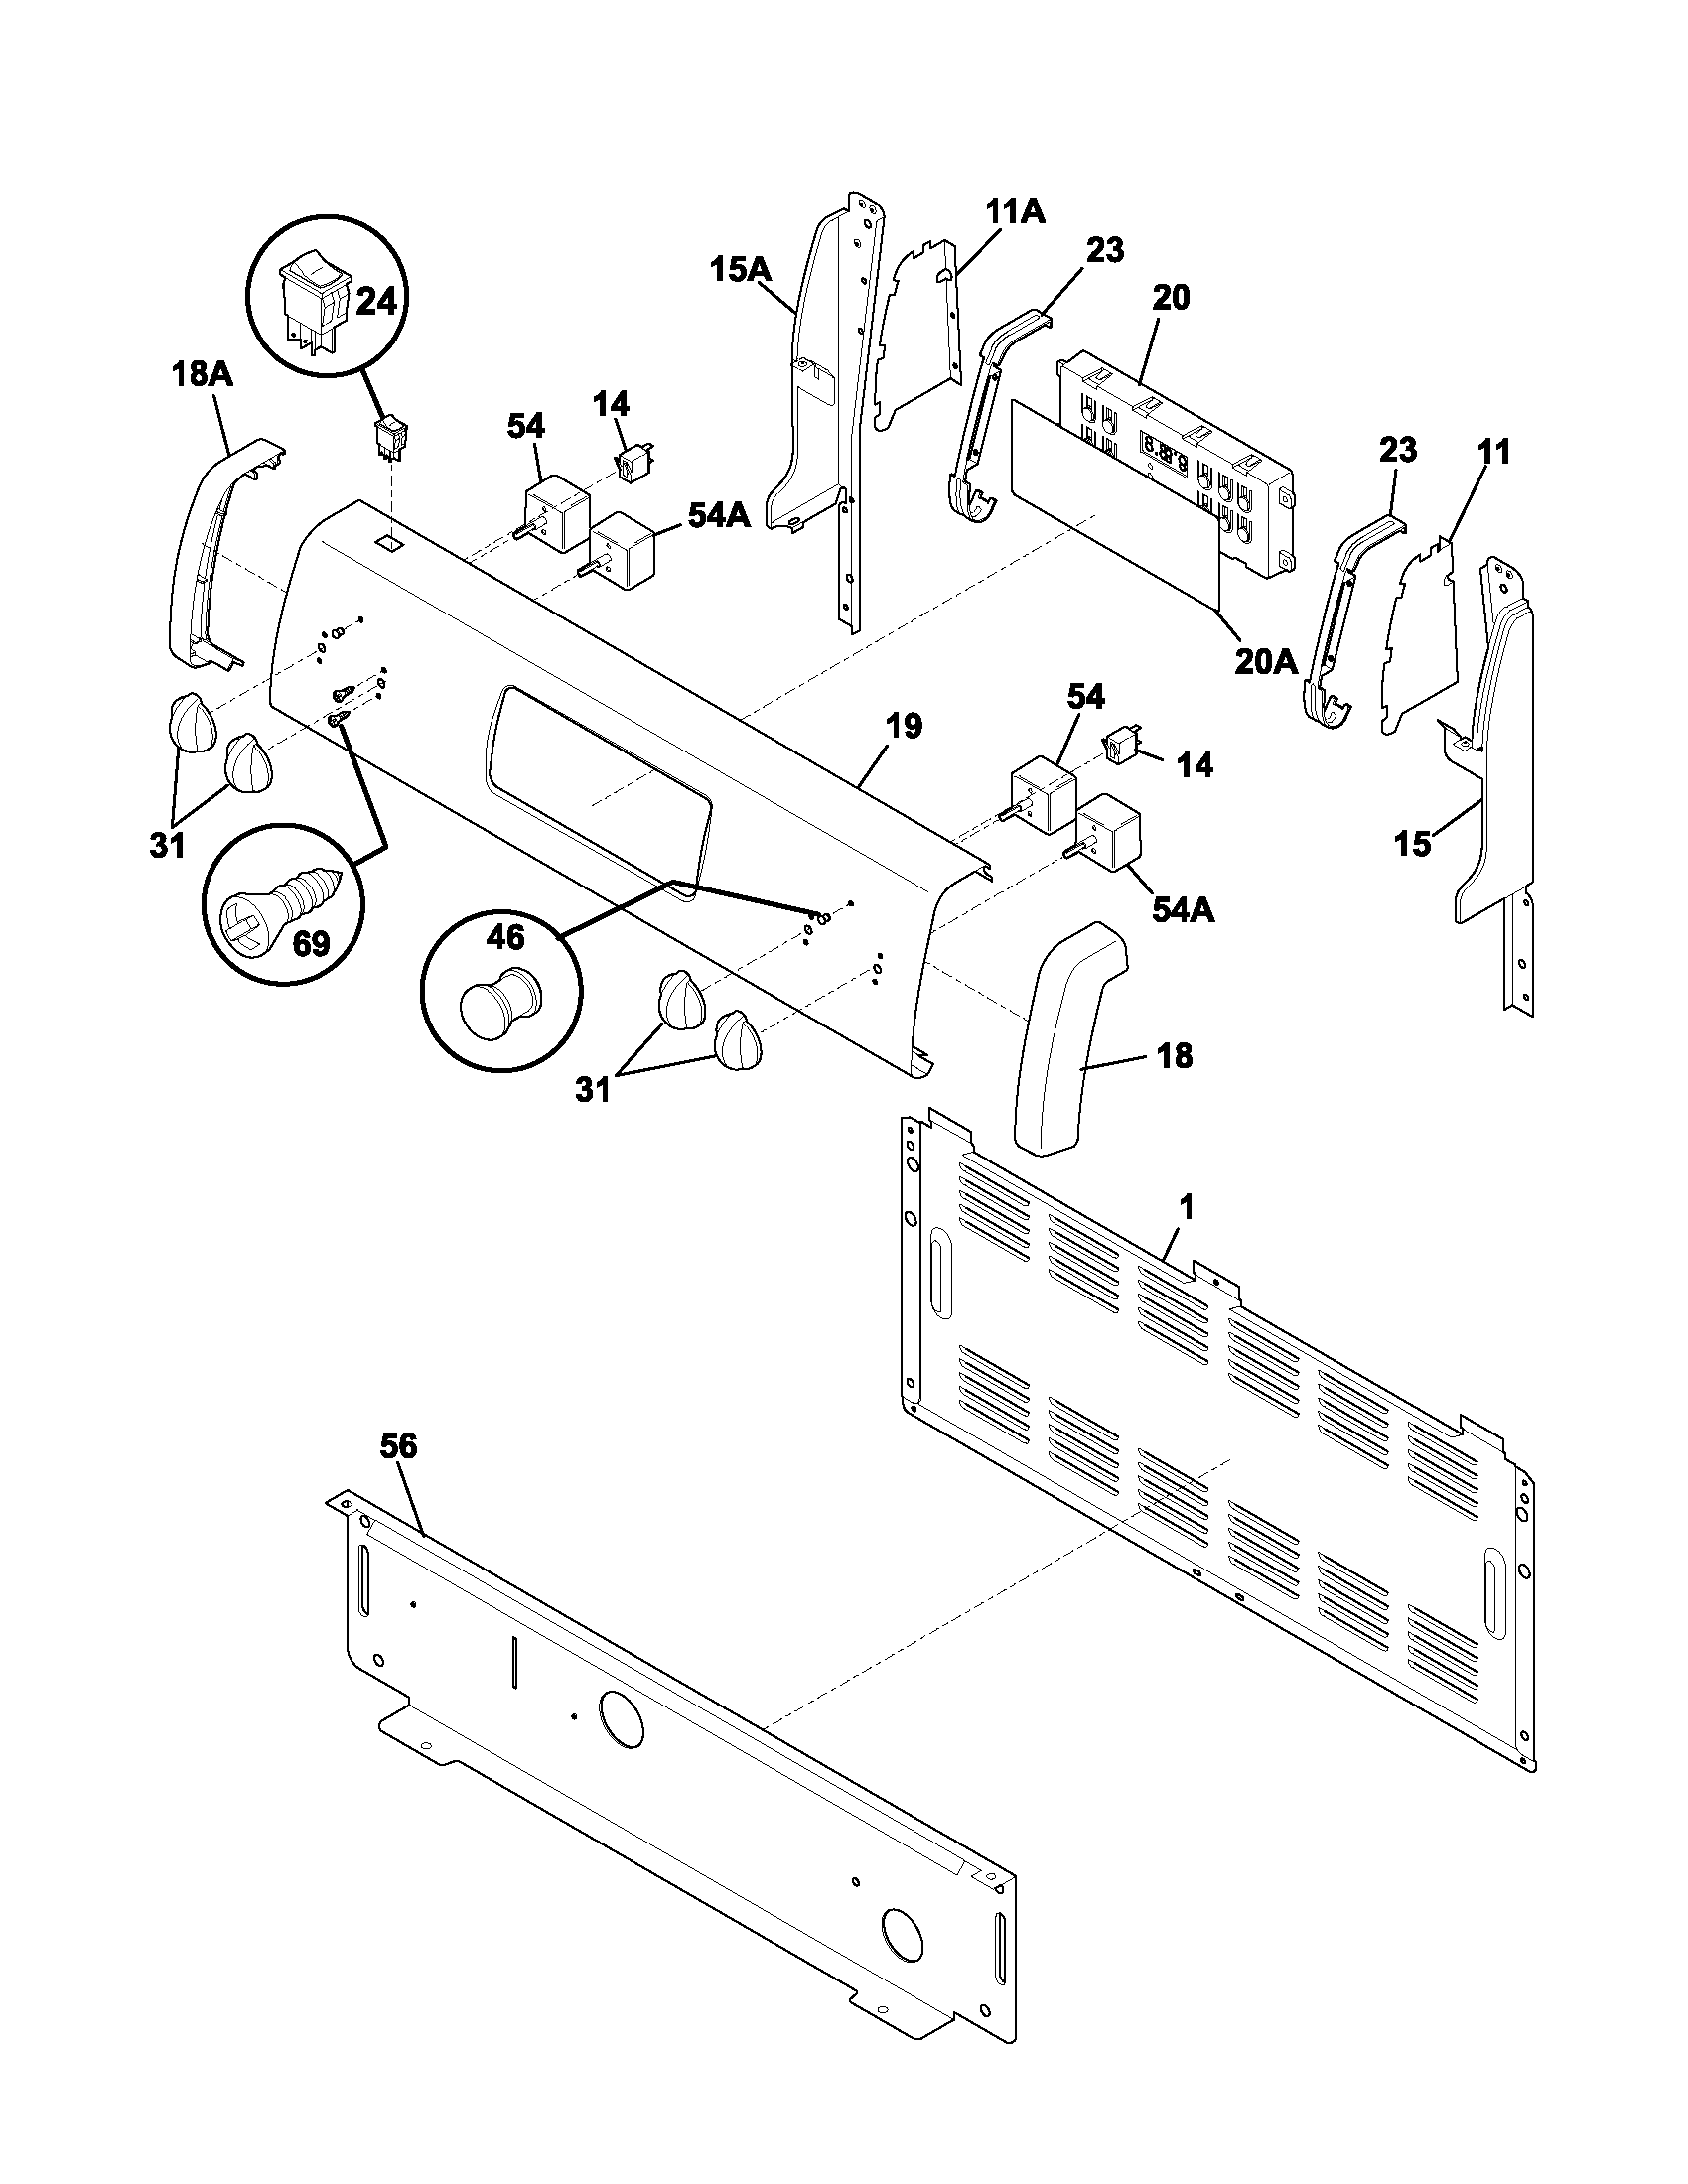 hight resolution of fef352asf electric range backguard parts diagram